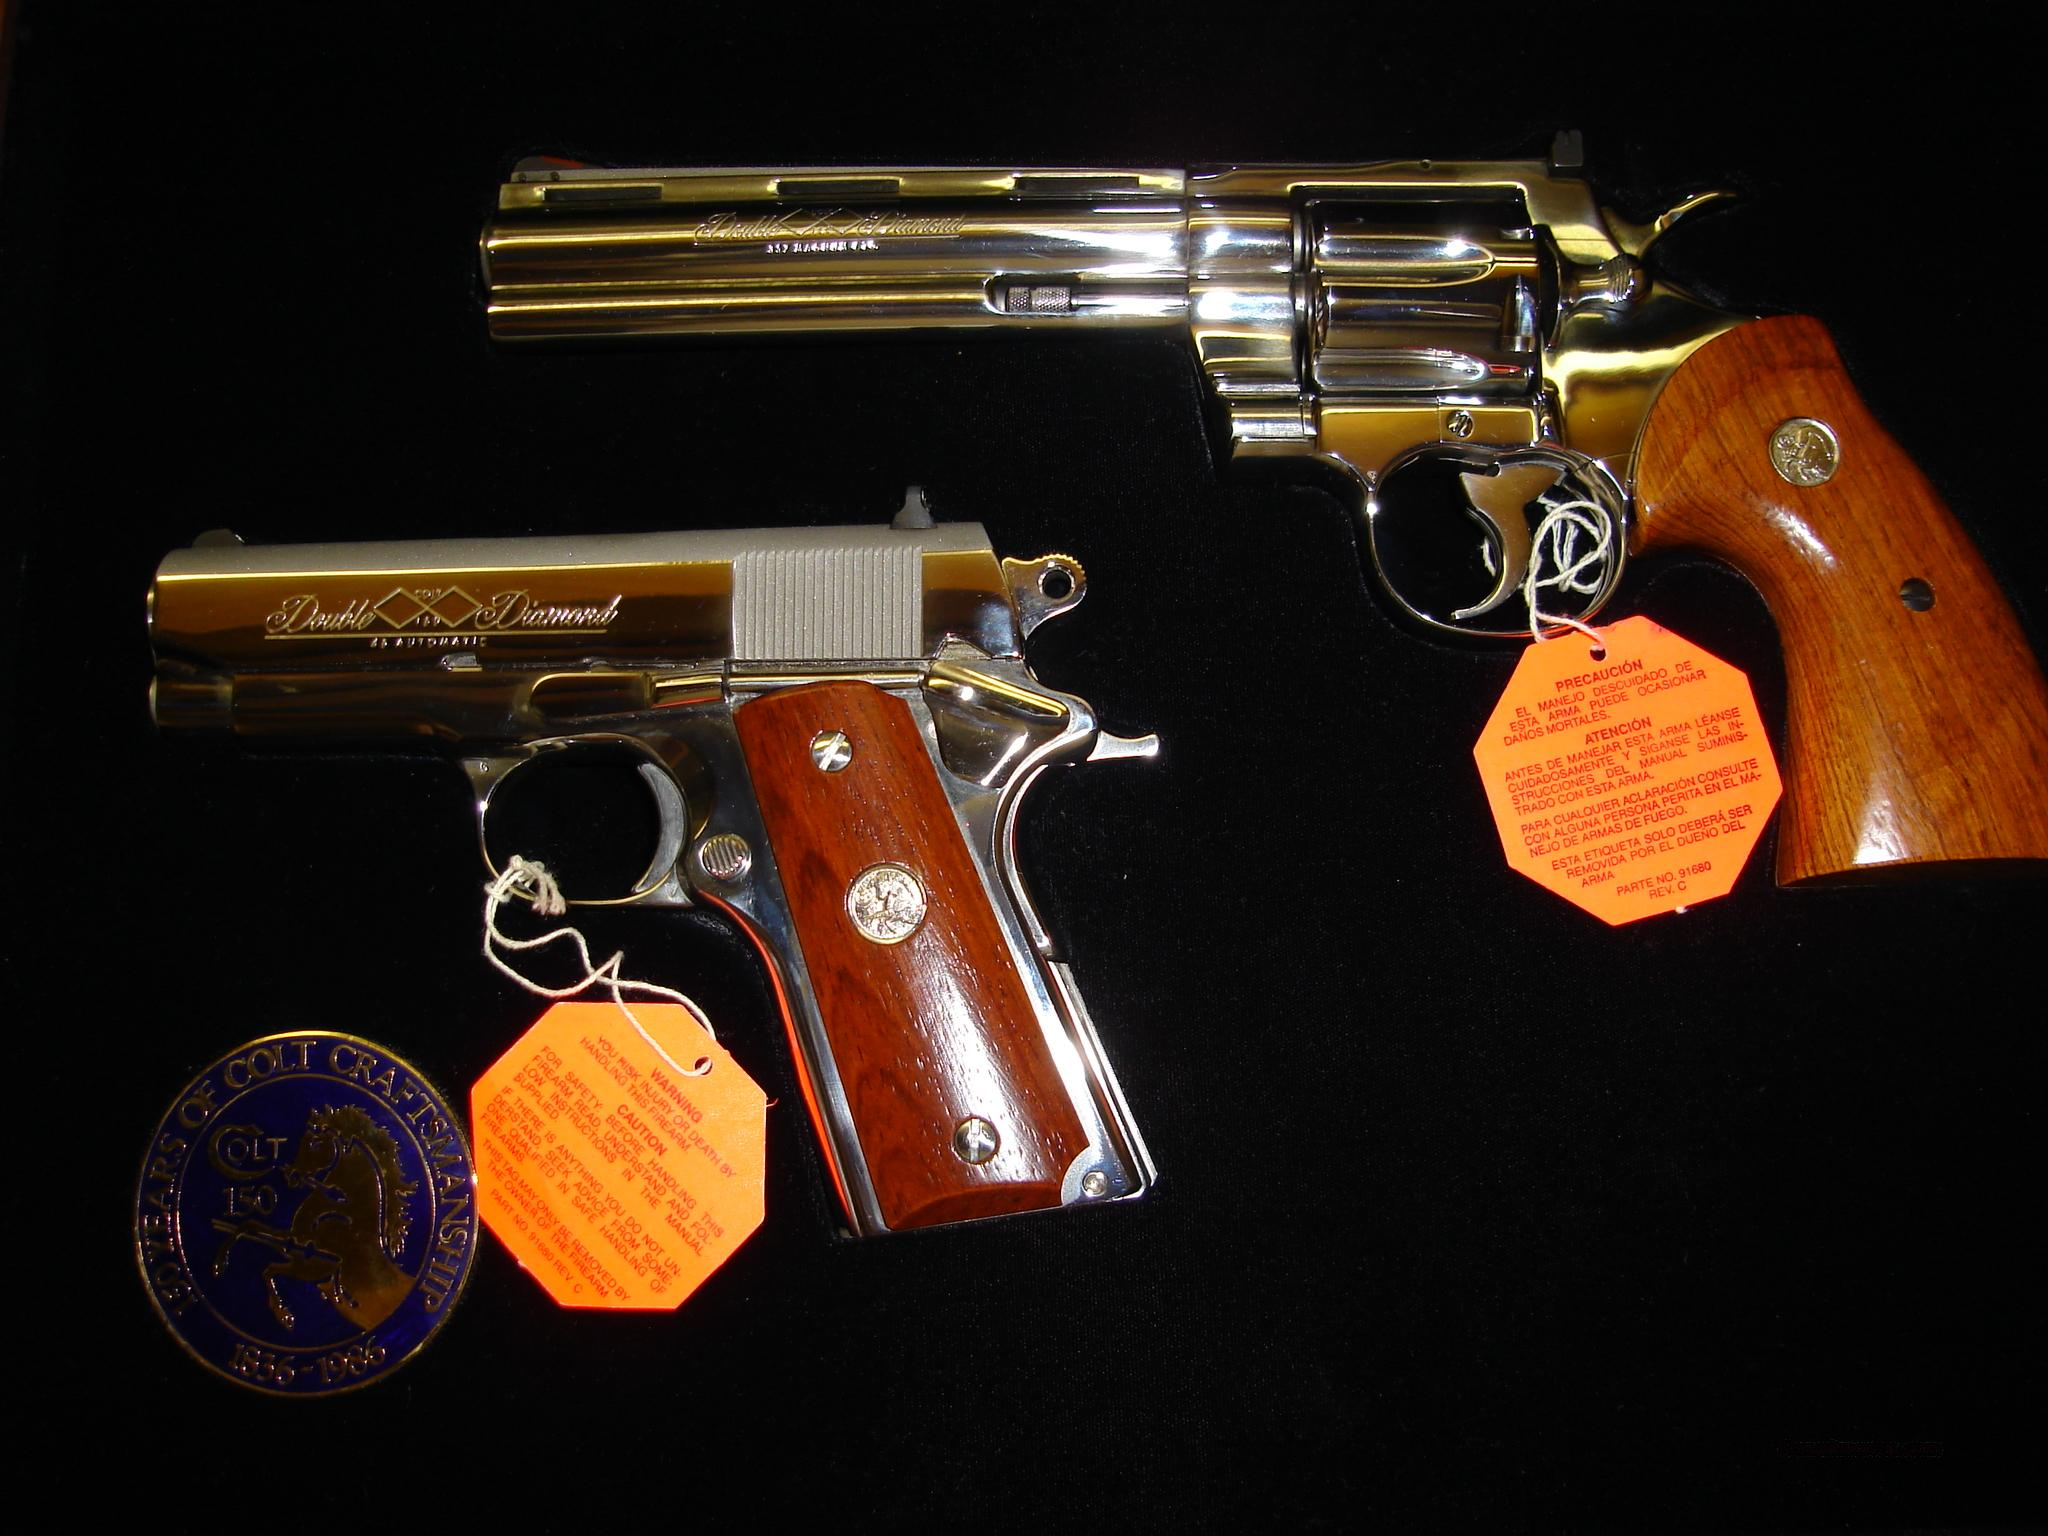 Colt Double Diamond Set - Cust Python.357 - Officer.45  Guns > Pistols > Colt Double Action Revolvers- Modern